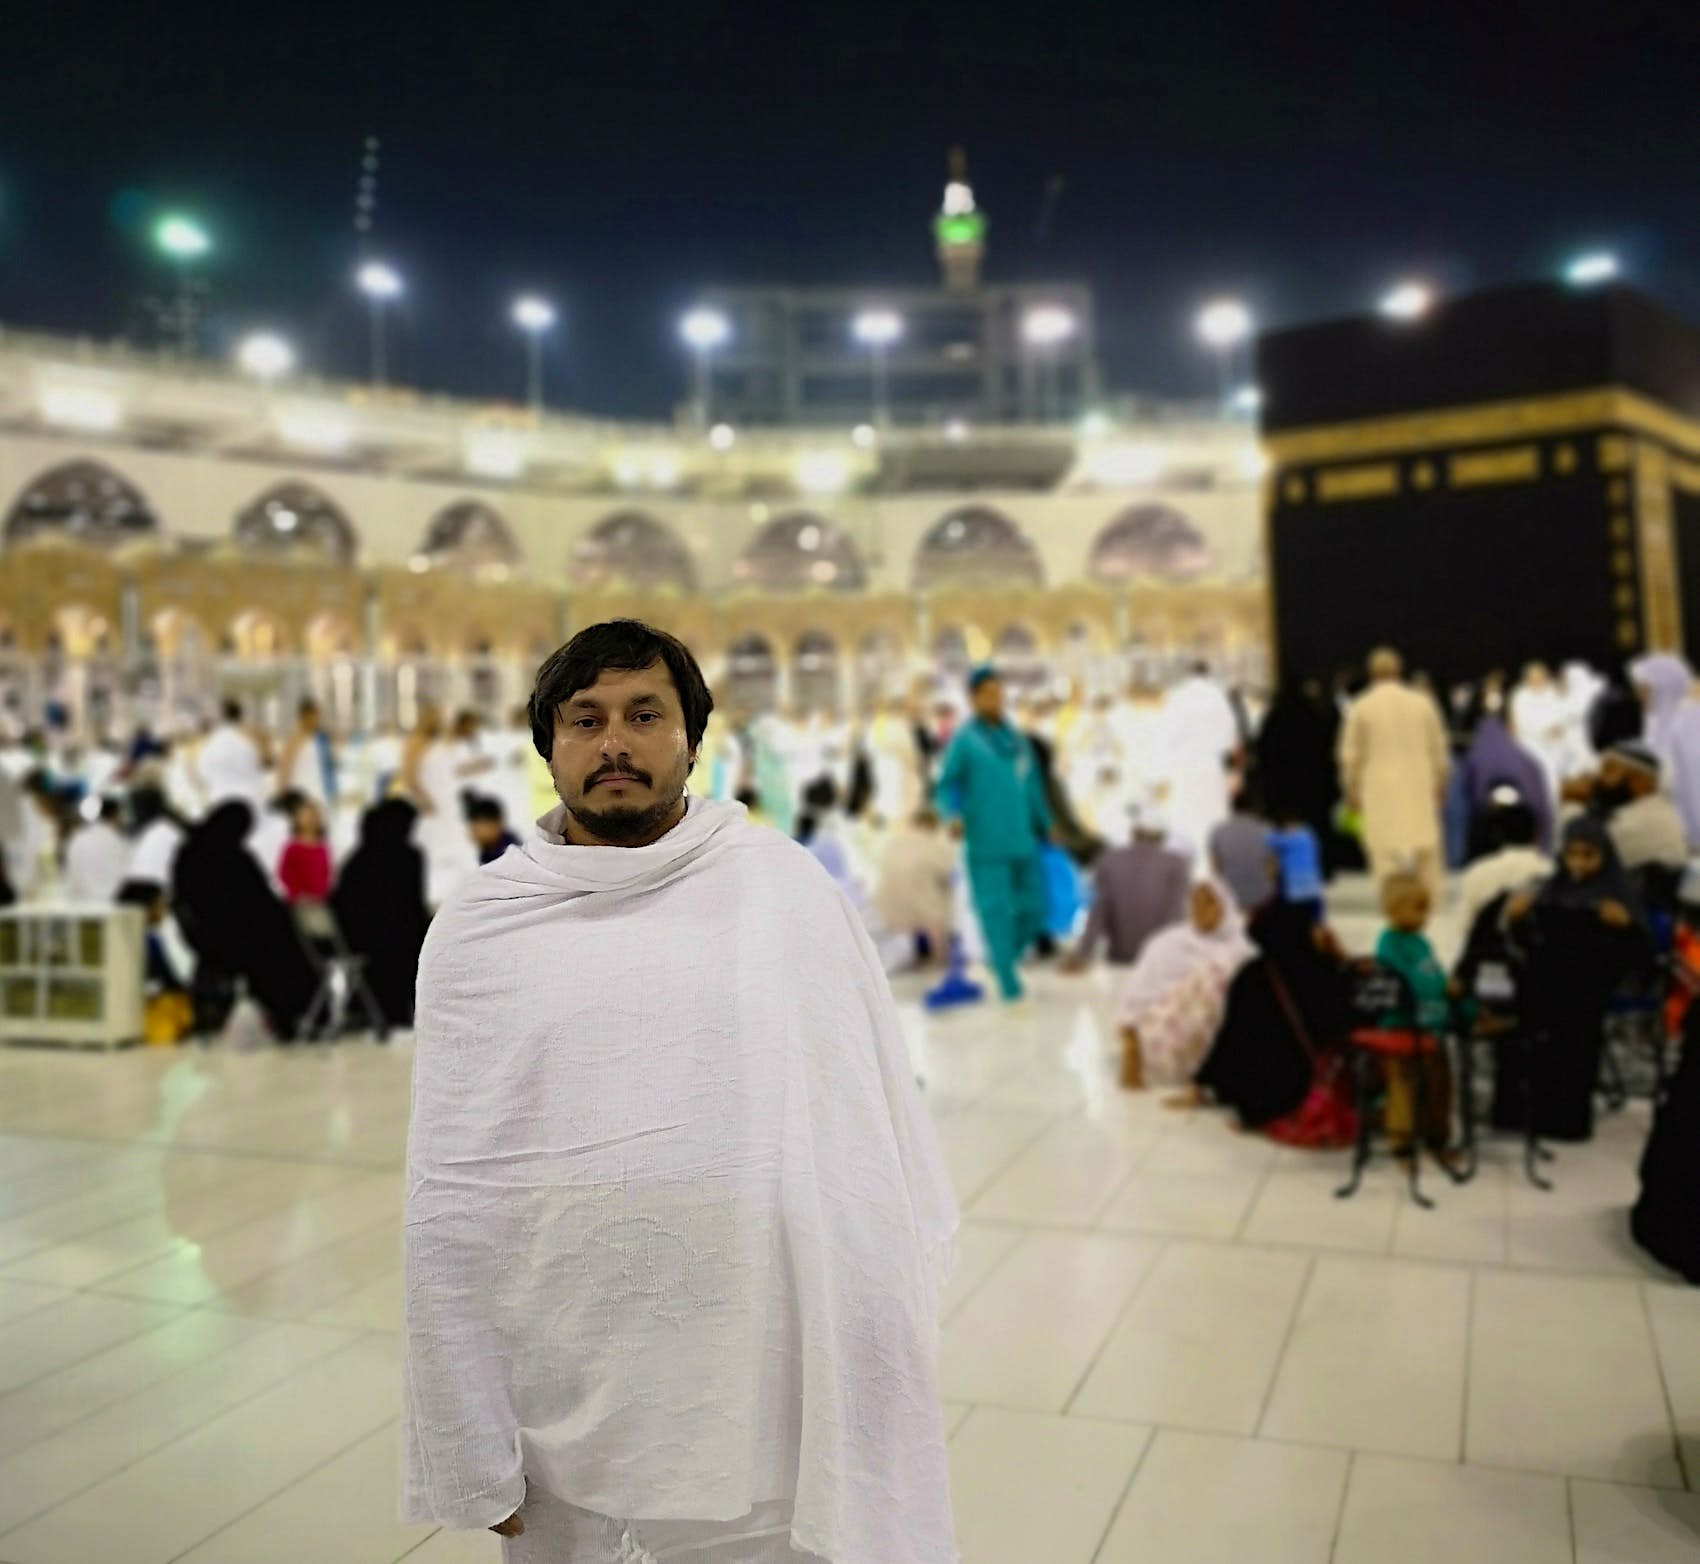 A man in white robe stands facing the camera in front of the Kaaba in The Great Mosque in Mecca. A large group of pilgrims are in the background behind him, sitting, standing and talking.